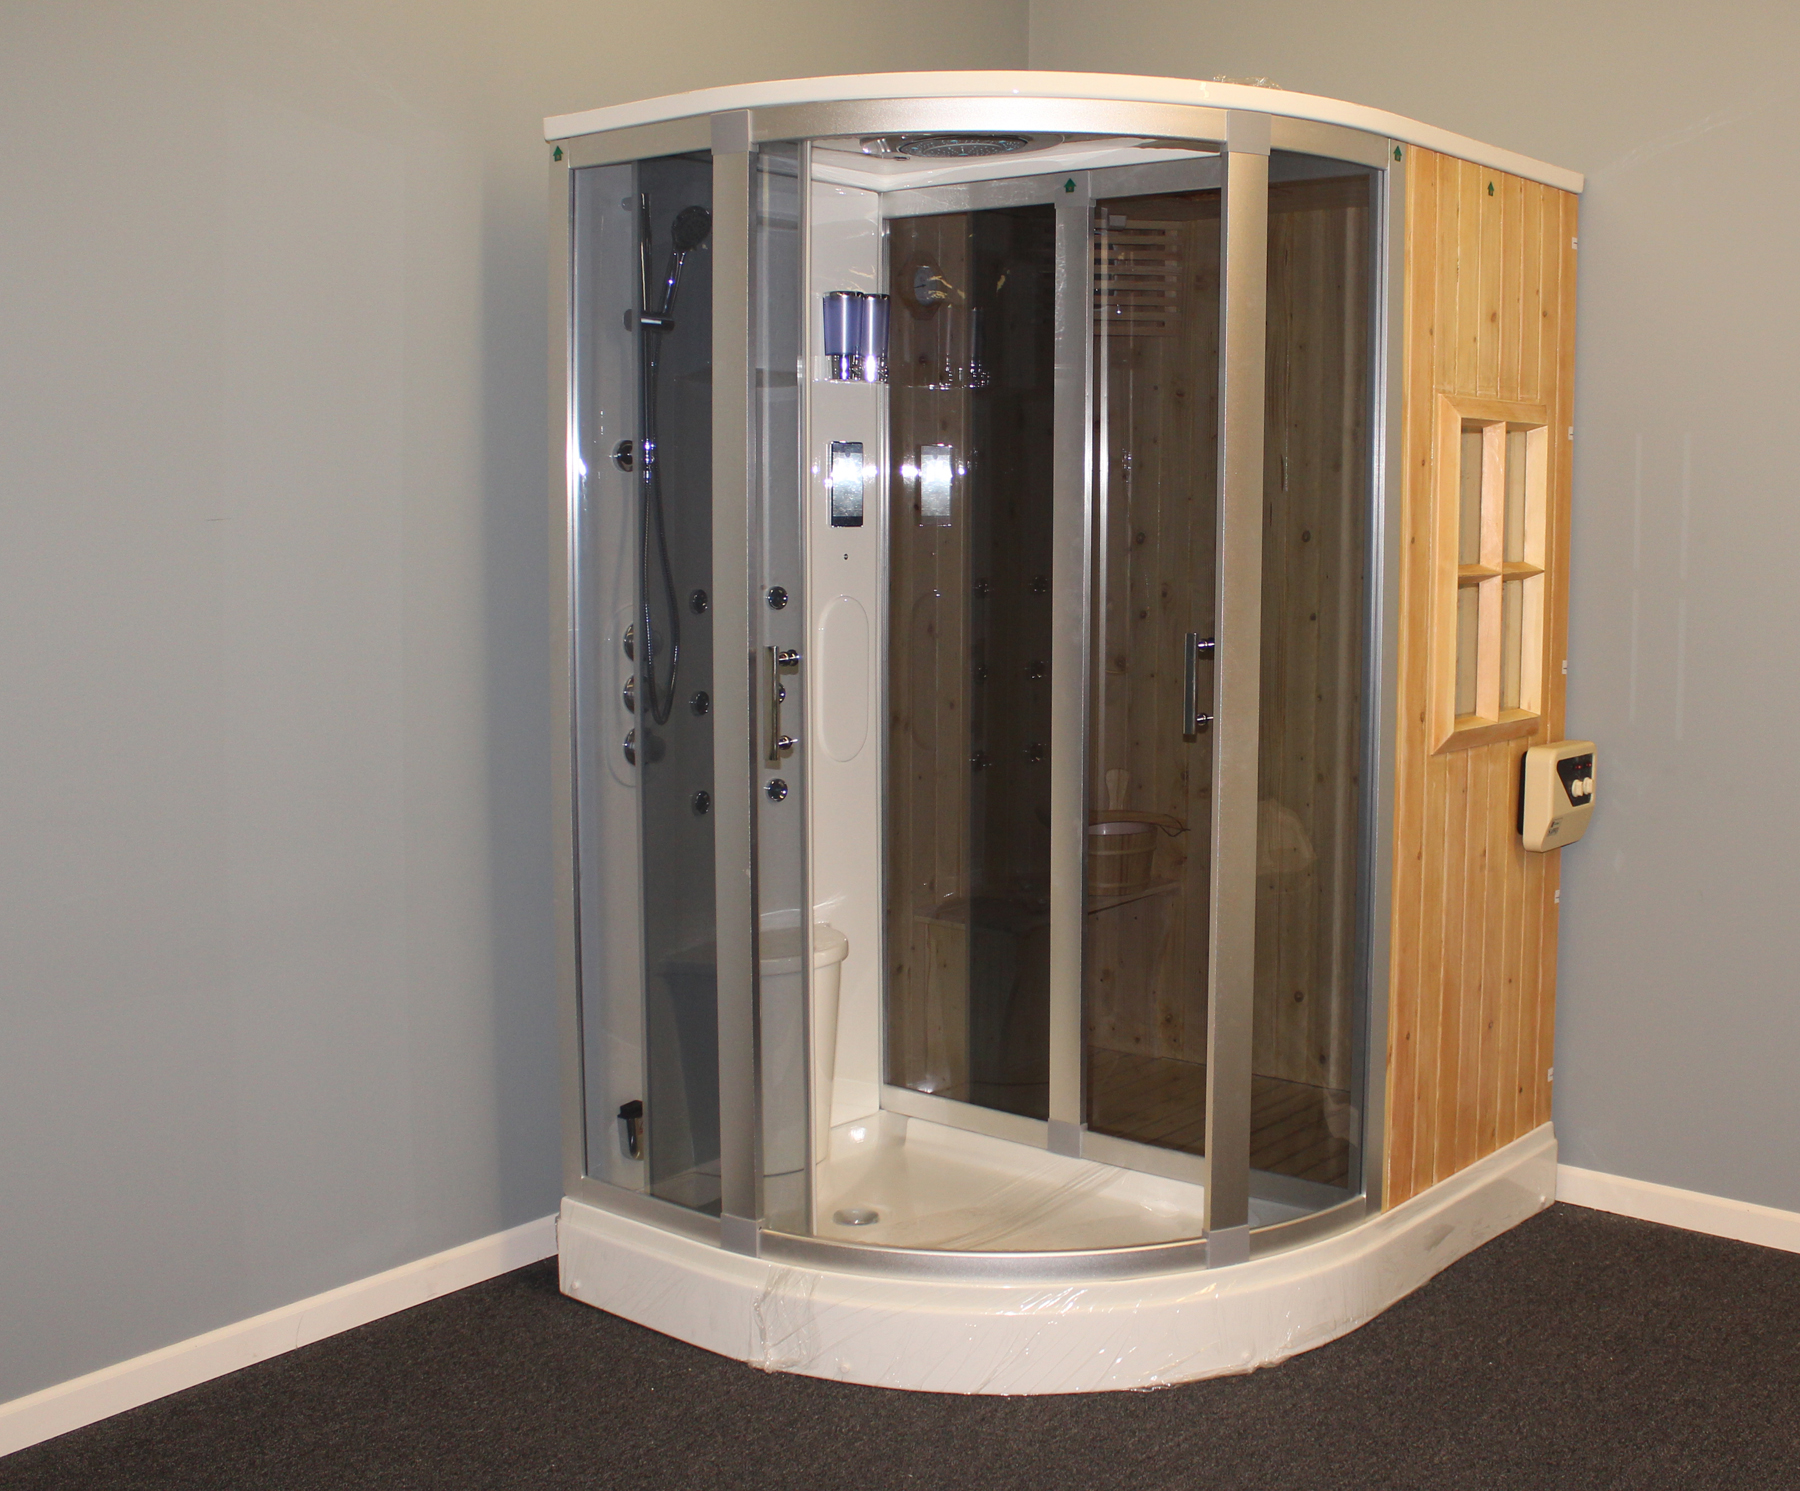 B001 - Image 19 Deluxe Shower / Dry Sauna Combo System + Steam Cabin.